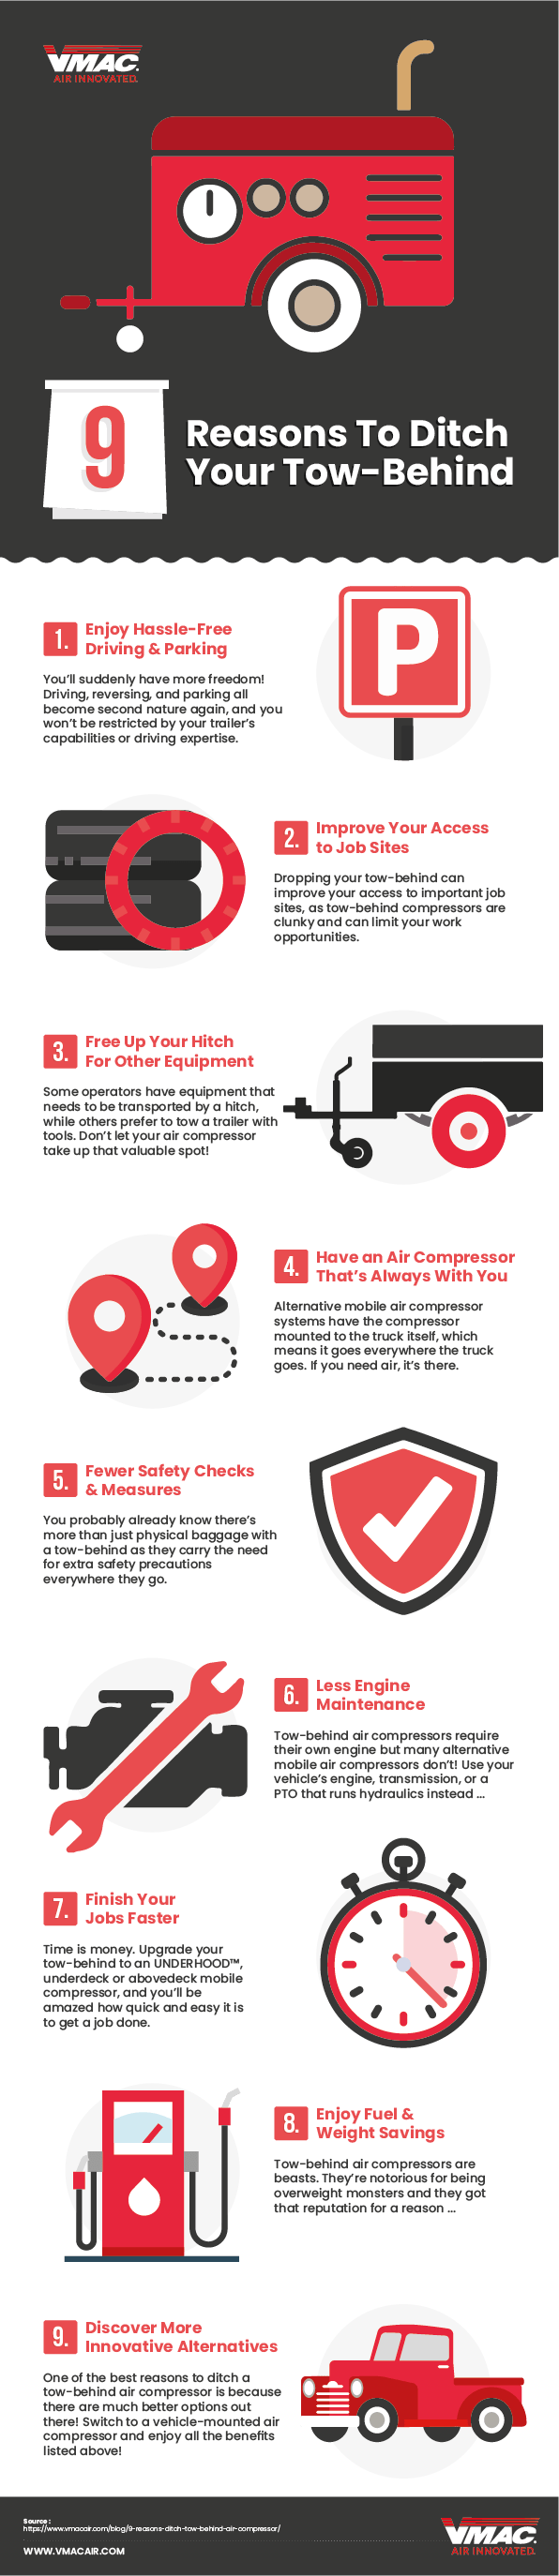 medium resolution of reasons to ditch your tow behind infographic